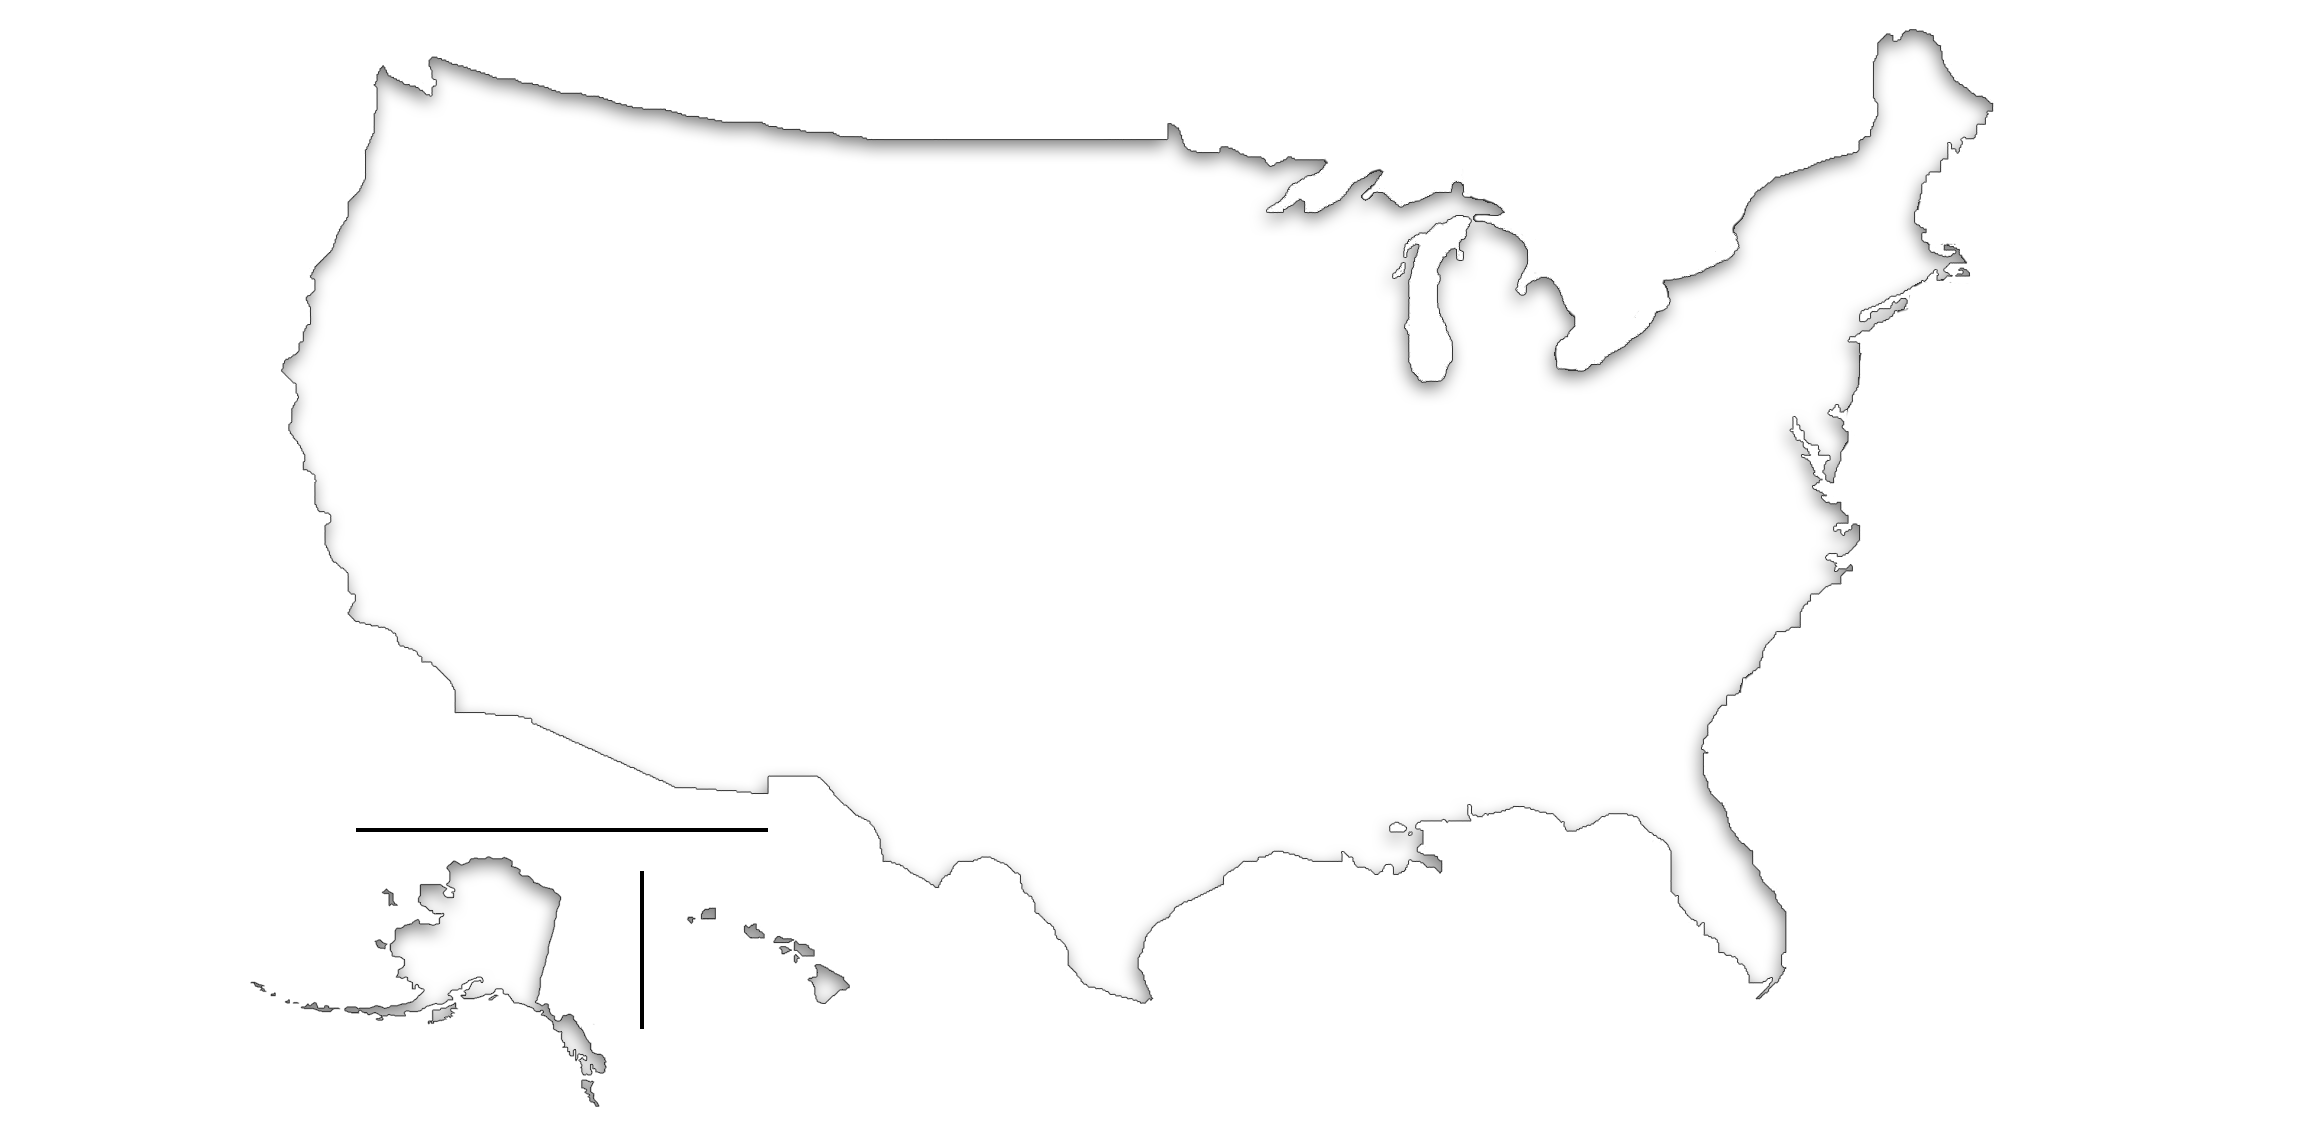 Library Of United States Map Black And White Graphic